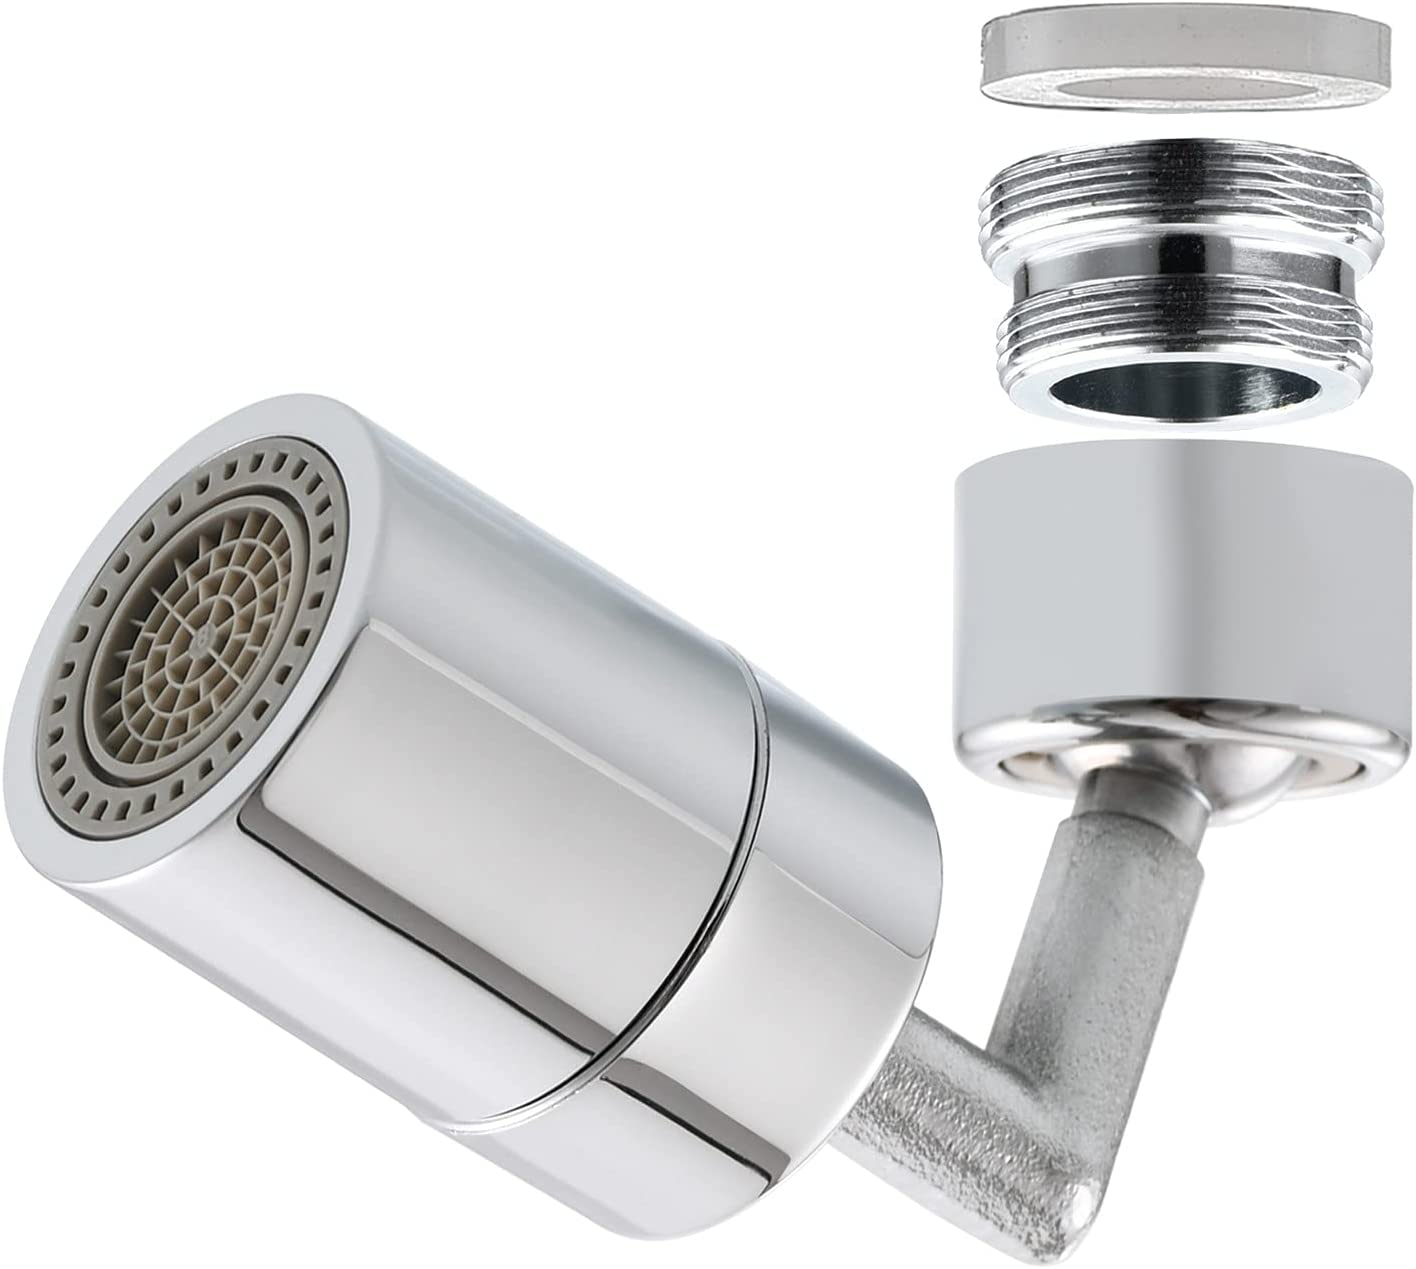 Jumpace Bombing free shipping GT6-OXJ Brass Faucet Brand Cheap Sale Venue Aerator for Sink M22 M24 X